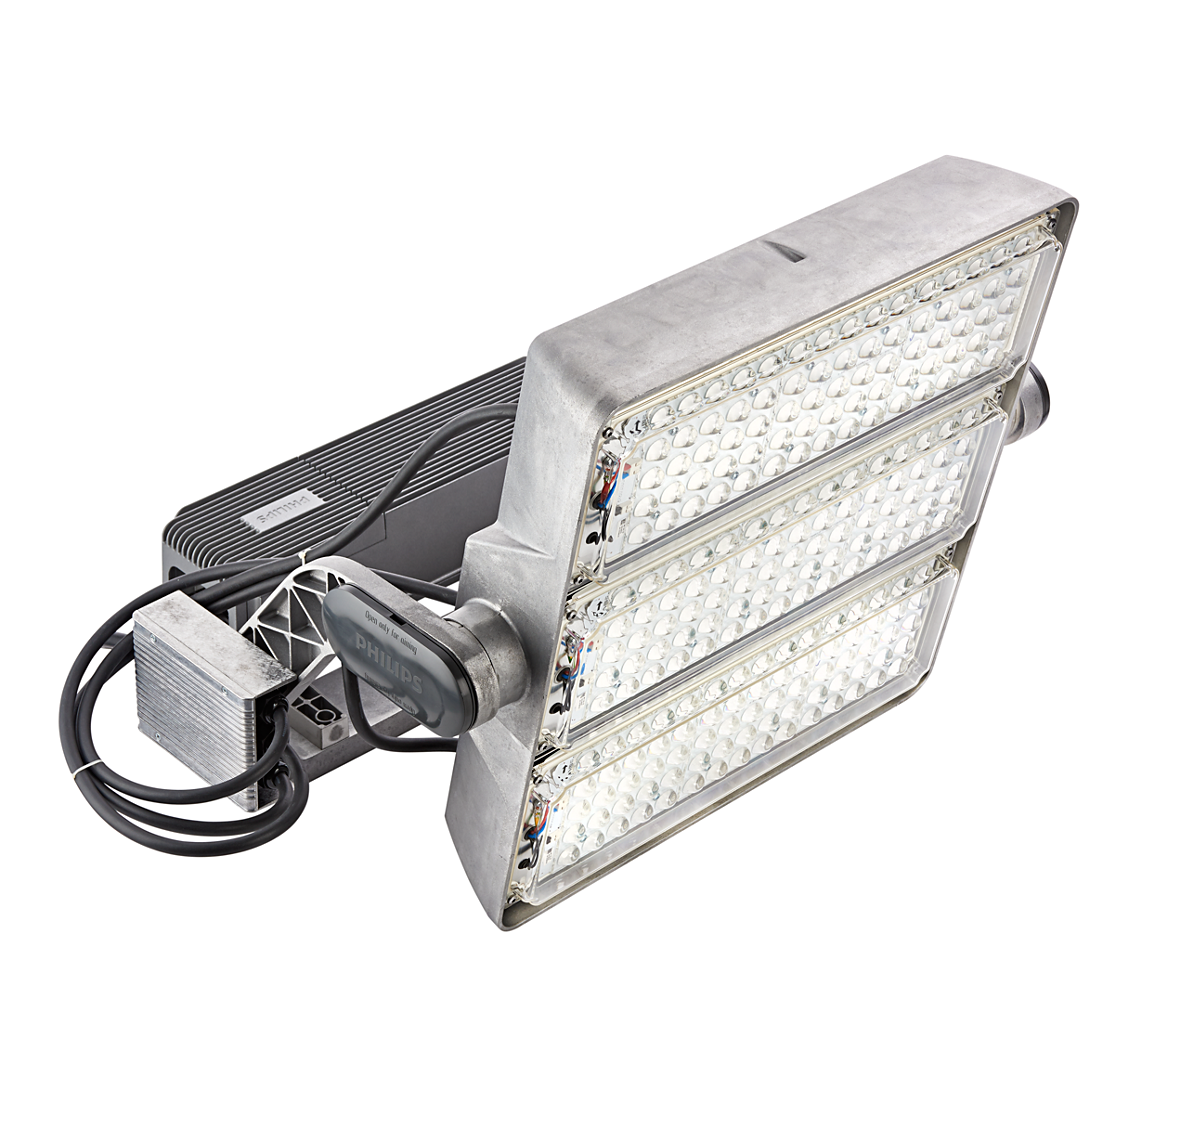 OptiVision LED Gen2 BVP515/BVP525